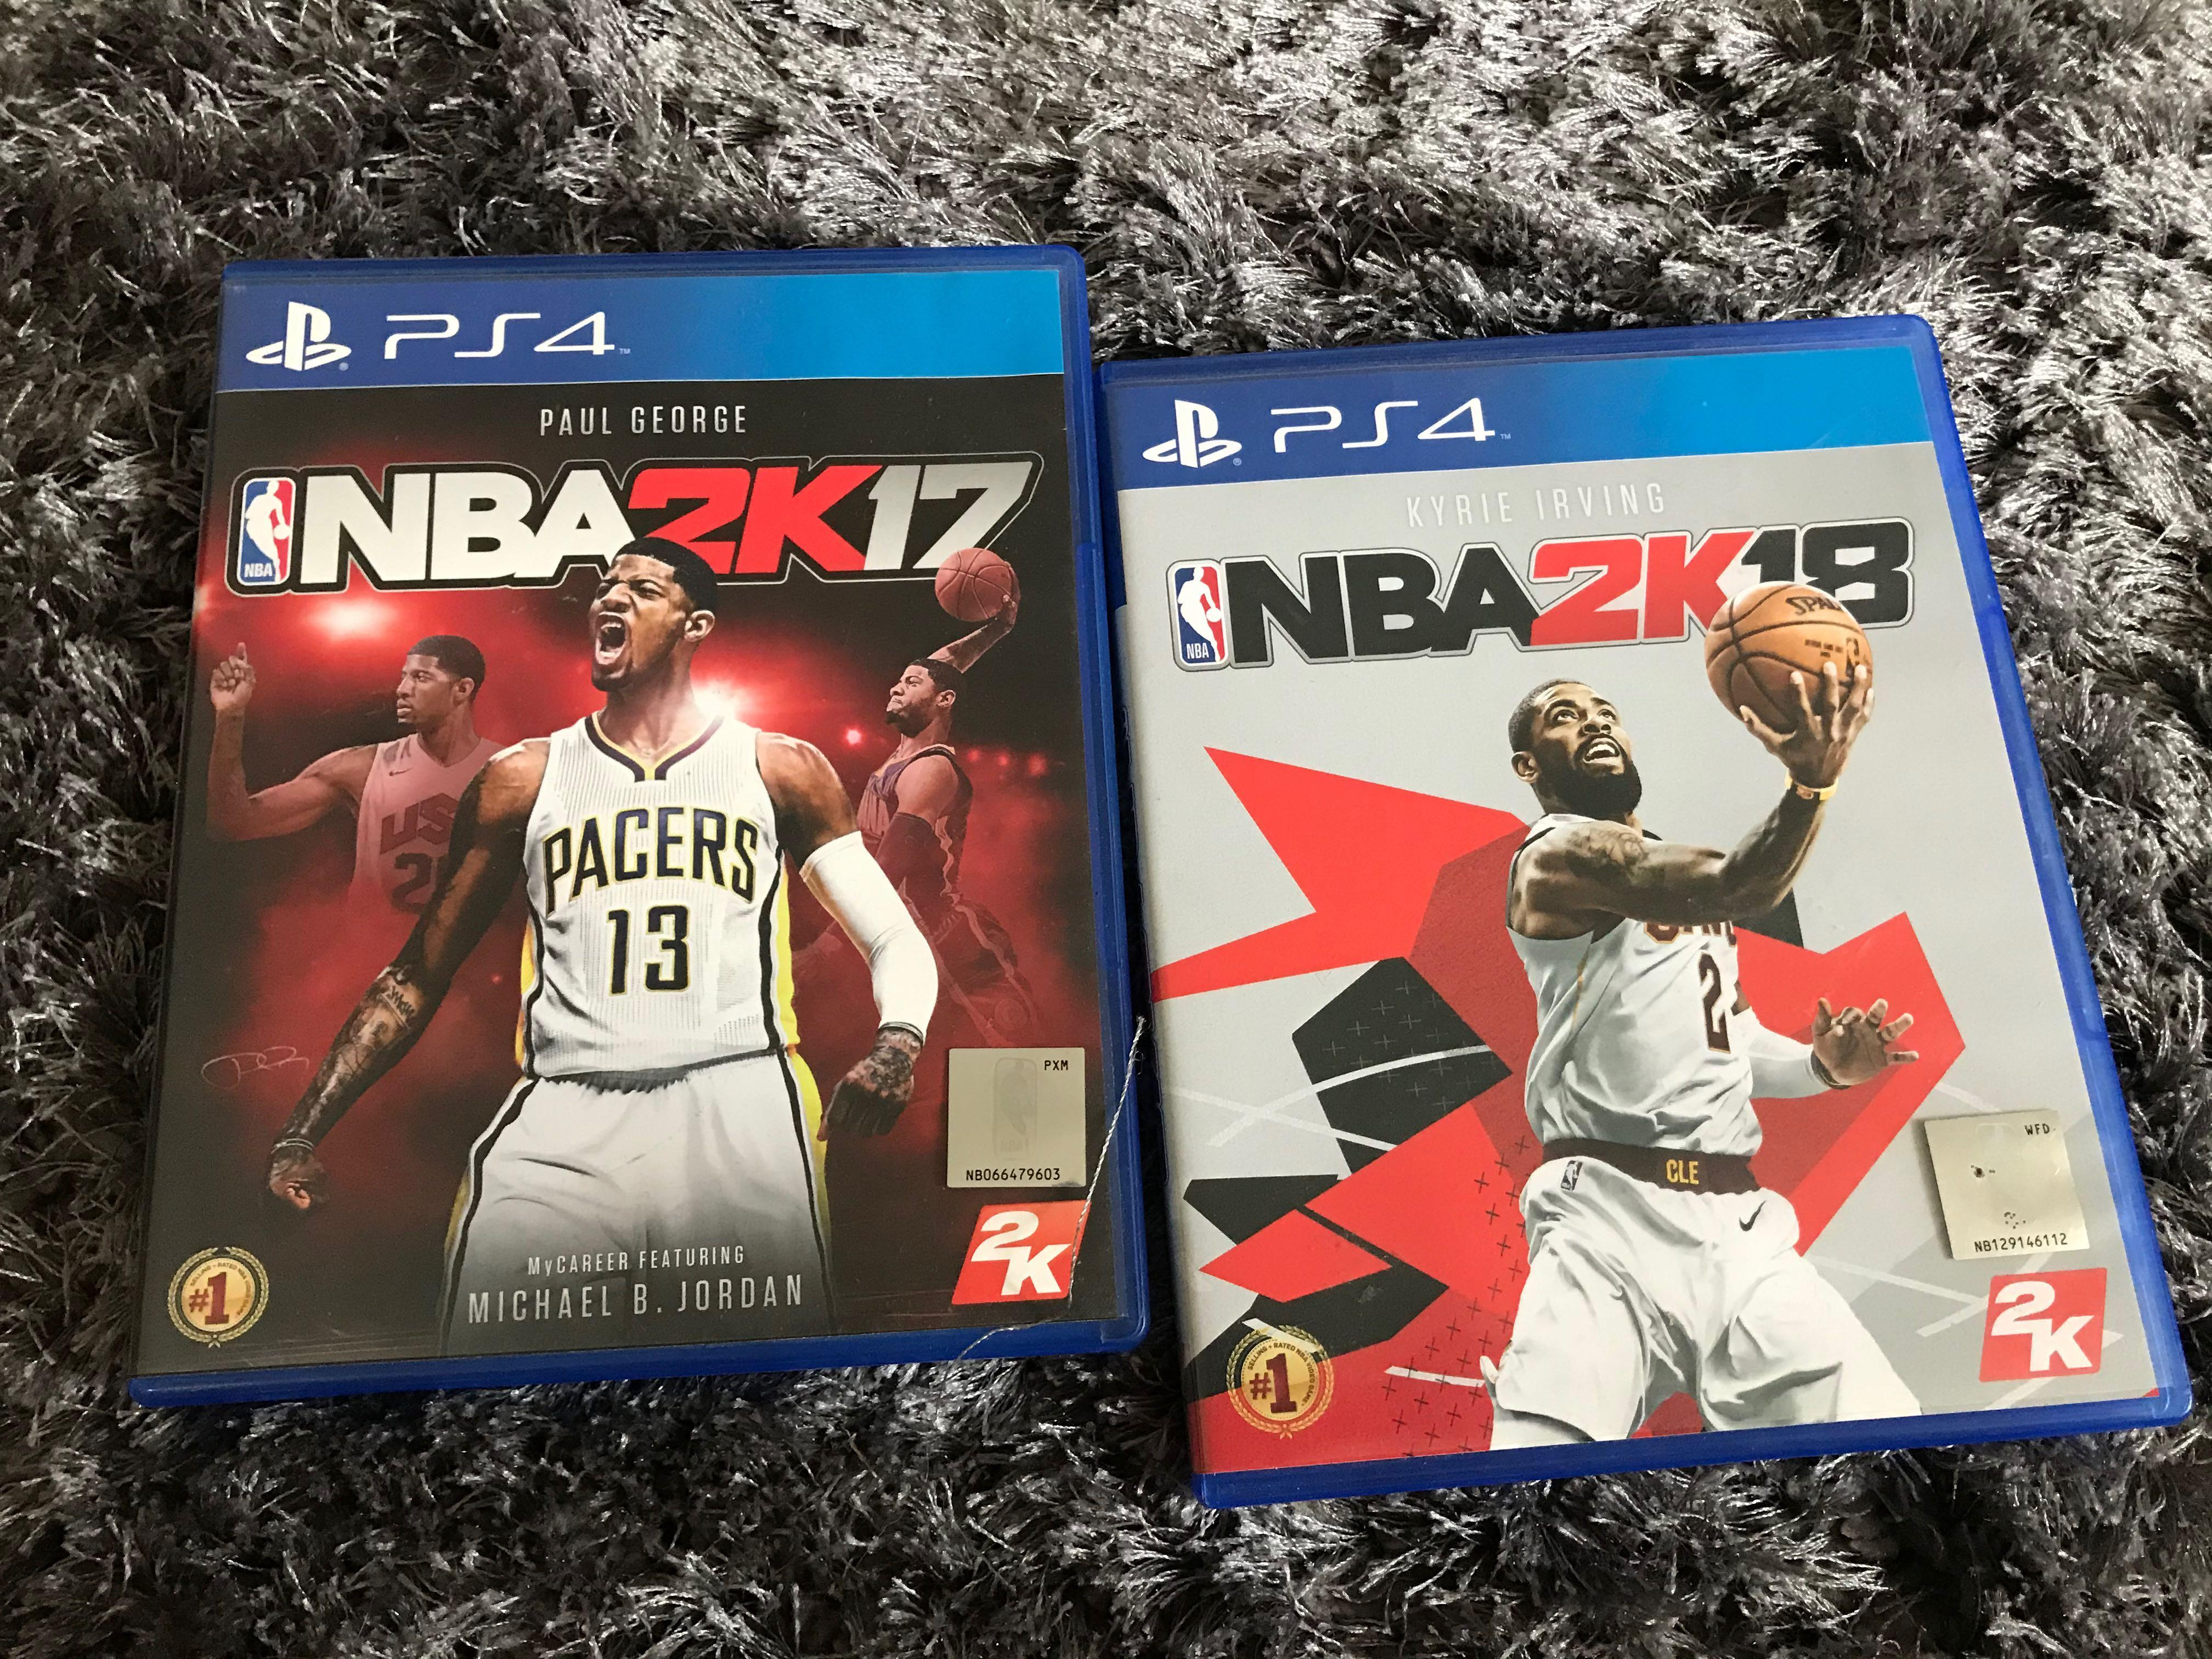 Kaset Ps4 nba2k